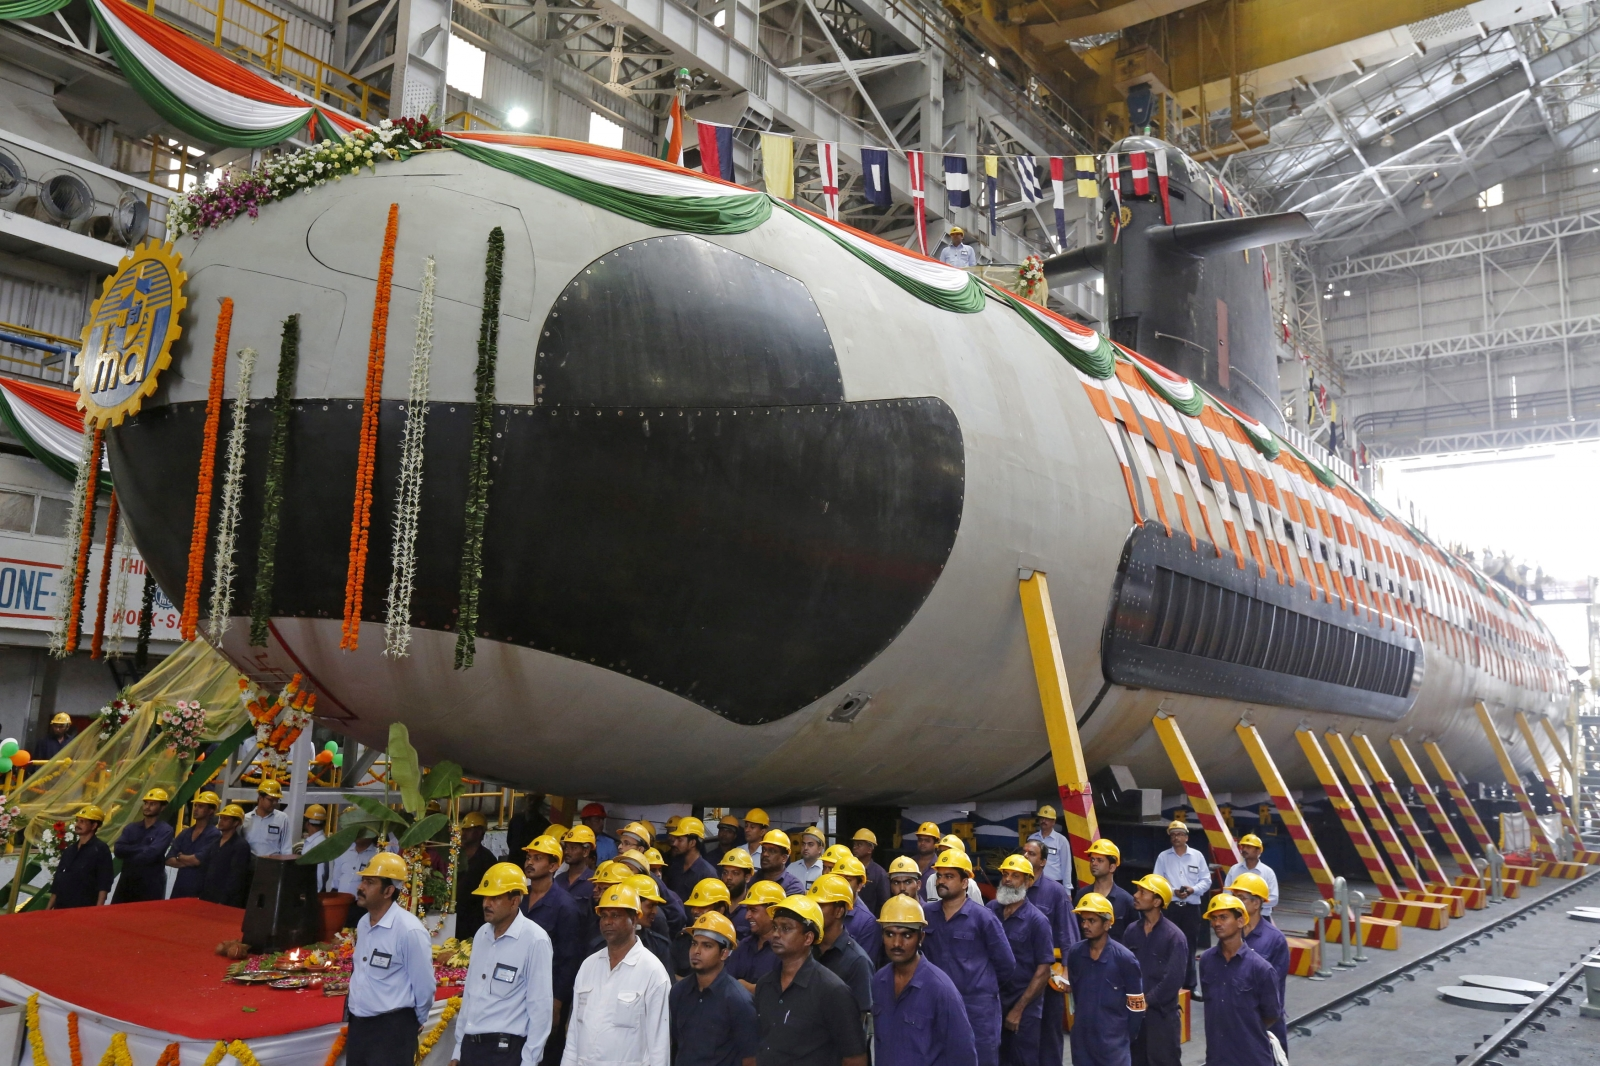 Pakistan and China express interest in going after leaked Scorpene submarine documents